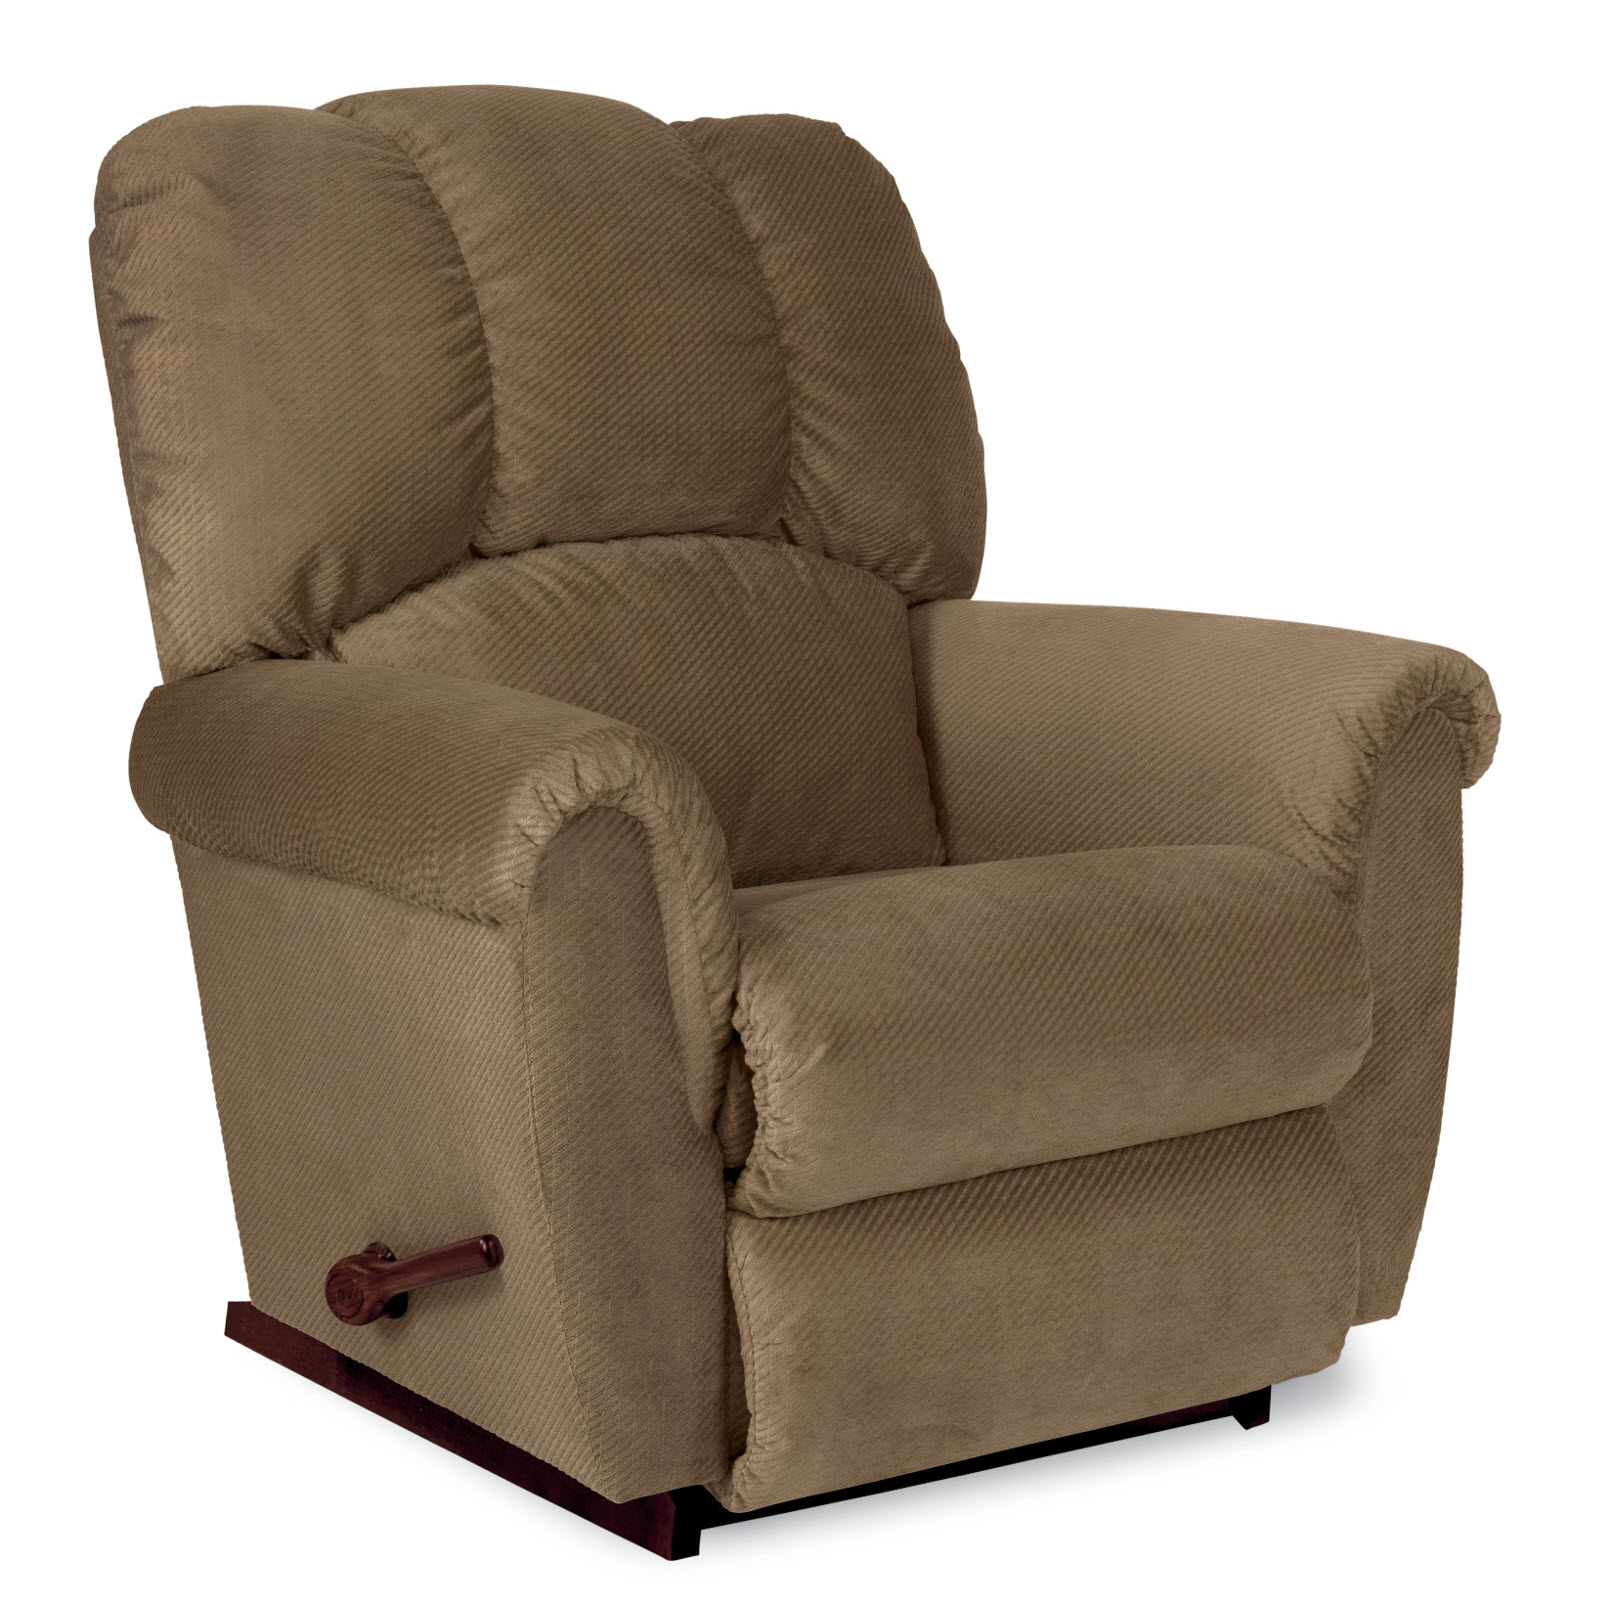 La-Z-Boy Conner Reclina-Rocker Recliner-Tan  sc 1 st  Sears & Recliners | Recliner Chairs - Sears islam-shia.org